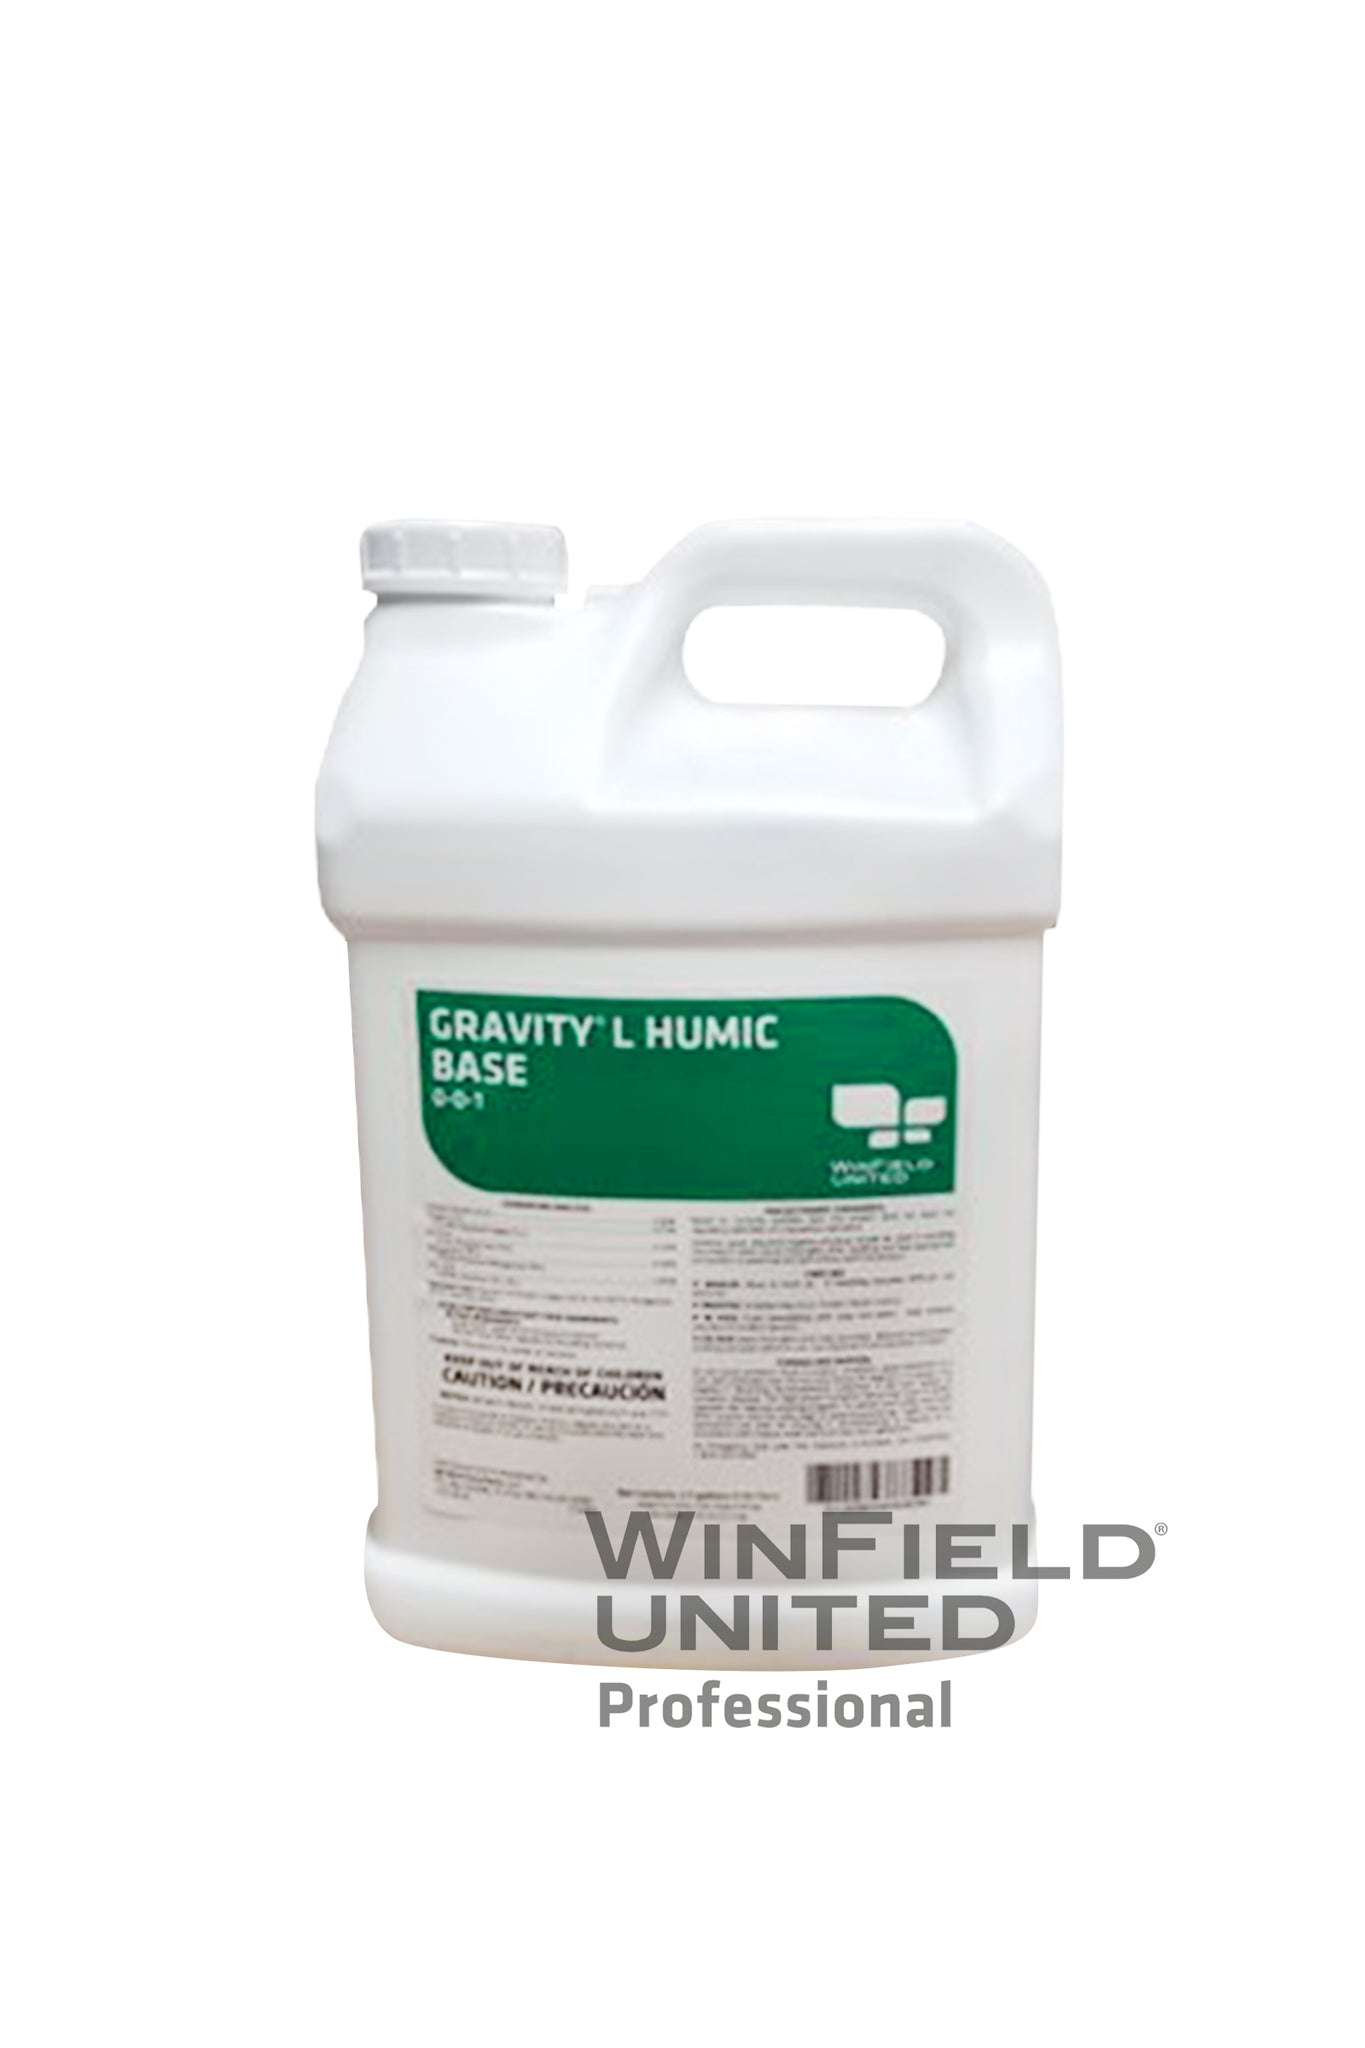 Gravity L Humic Base